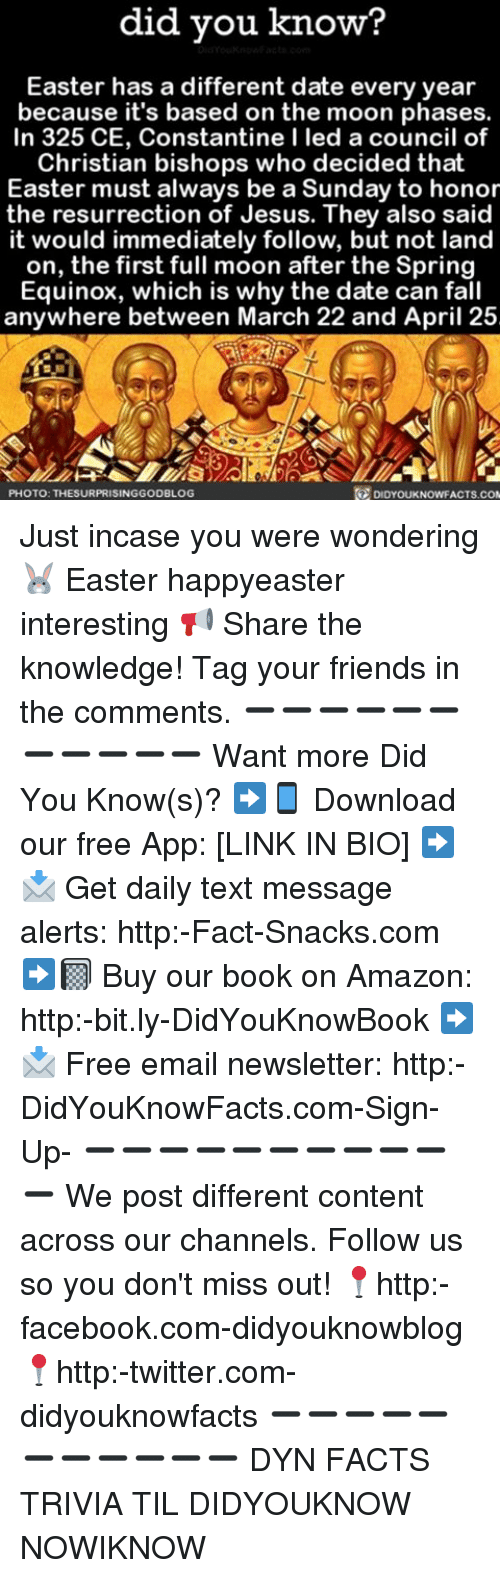 Amazon, Easter, and Facebook: did you know?  Easter has a different date every year  because it's based on the moon phases.  In 325 CE, Constantine I led a council of  Christian bishops who decided that  Easter must always be a Sunday to honor  the resurrection of Jesus. They also said  it would immediately follow, but not land  on, the first full moon after the Spring  Equinox, which is why the date can fall  anywhere between March 22 and April 25  PHOTO: THESURPRISINGGODBLOG  DIDYOUKNOWFACTS.COM Just incase you were wondering 🐰 Easter happyeaster interesting 📢 Share the knowledge! Tag your friends in the comments. ➖➖➖➖➖➖➖➖➖➖➖ Want more Did You Know(s)? ➡📱 Download our free App: [LINK IN BIO] ➡📩 Get daily text message alerts: http:-Fact-Snacks.com ➡📓 Buy our book on Amazon: http:-bit.ly-DidYouKnowBook ➡📩 Free email newsletter: http:-DidYouKnowFacts.com-Sign-Up- ➖➖➖➖➖➖➖➖➖➖➖ We post different content across our channels. Follow us so you don't miss out! 📍http:-facebook.com-didyouknowblog 📍http:-twitter.com-didyouknowfacts ➖➖➖➖➖➖➖➖➖➖➖ DYN FACTS TRIVIA TIL DIDYOUKNOW NOWIKNOW